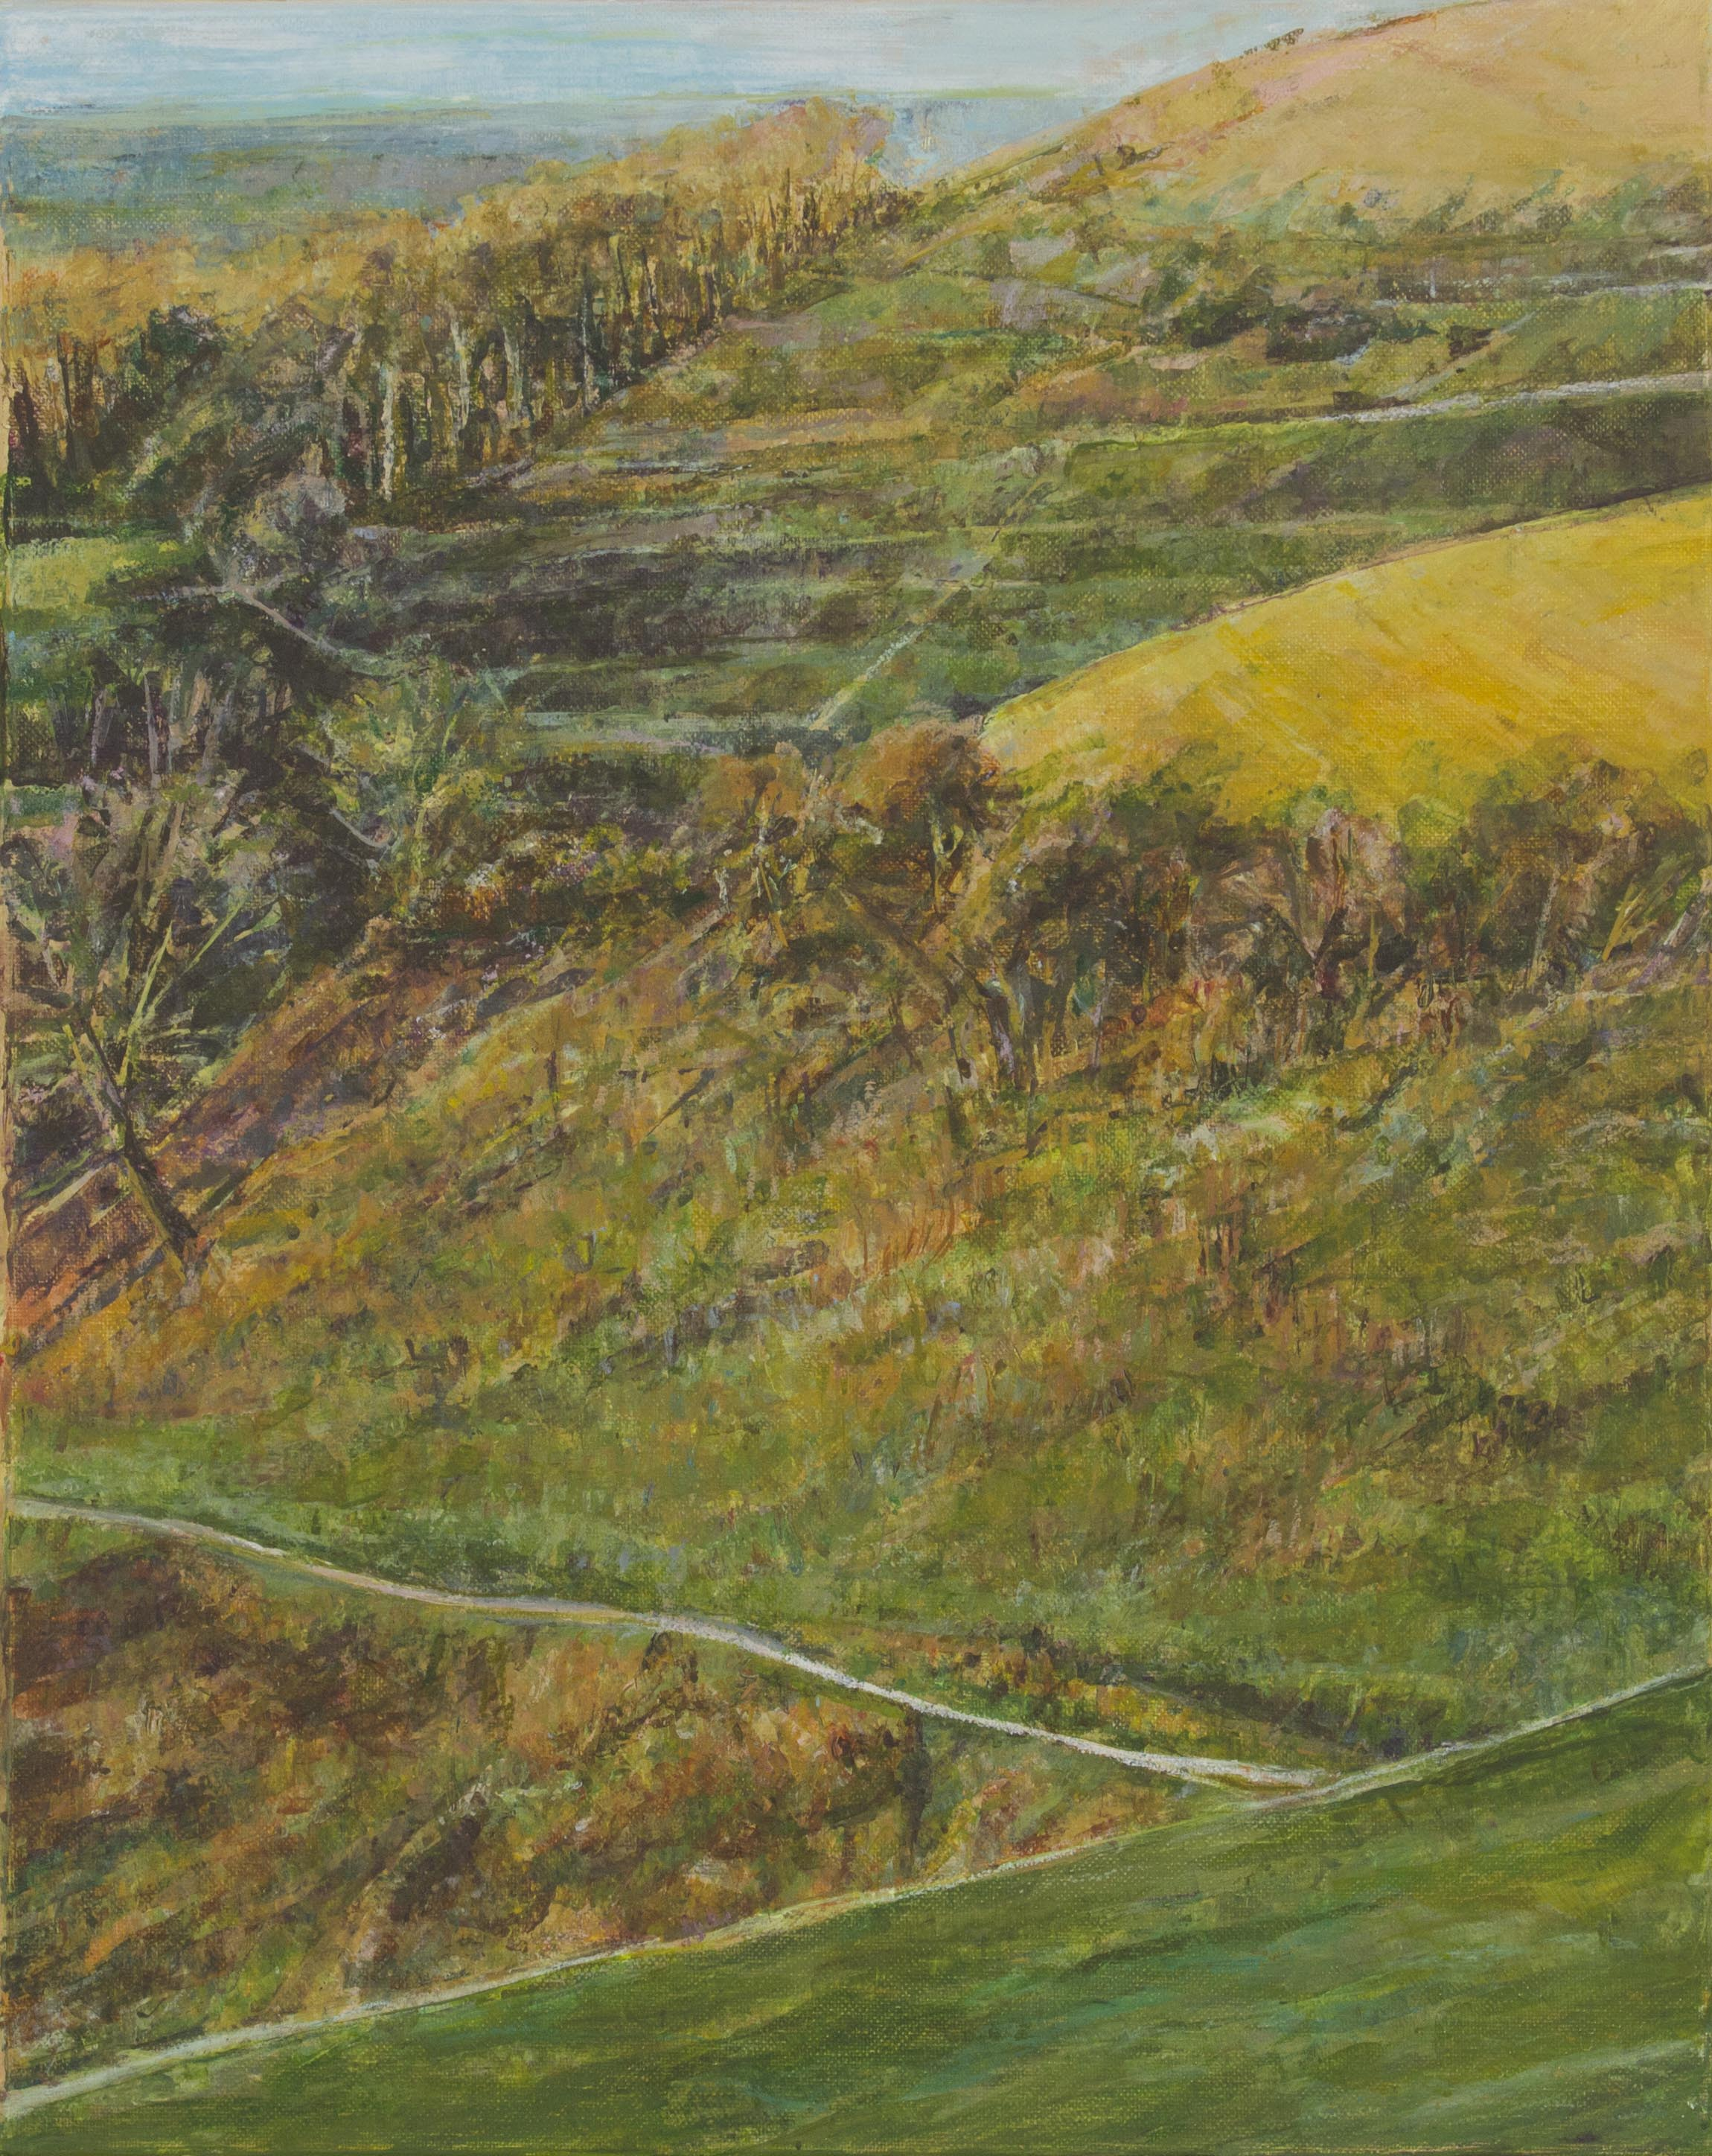 North Hill from Devil's Dyke - Oil pastel and acrylic paint on canvas50cm x 40cmSOLD